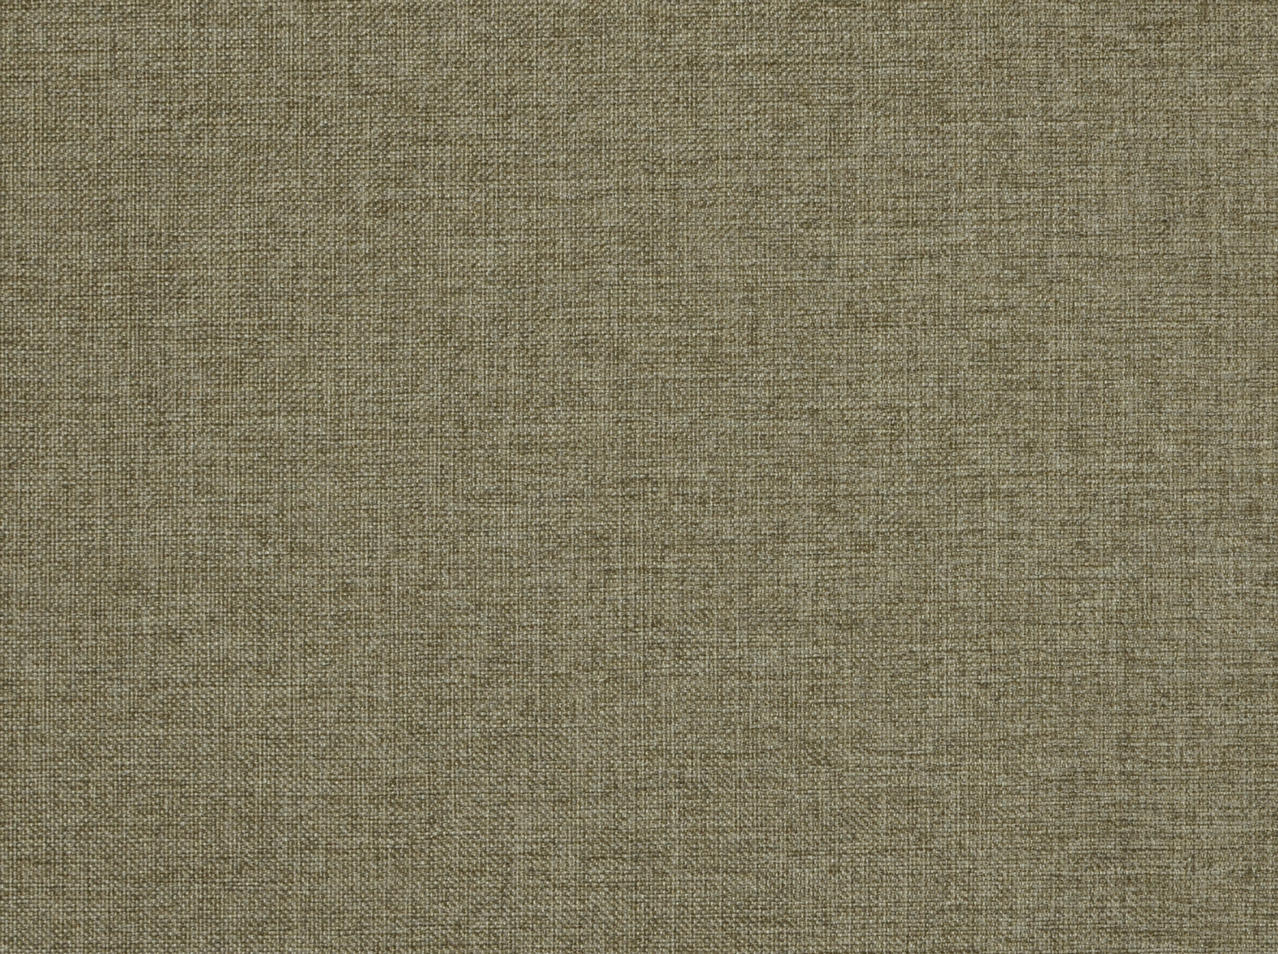 Covington Solids%20and%20Textures Paddock